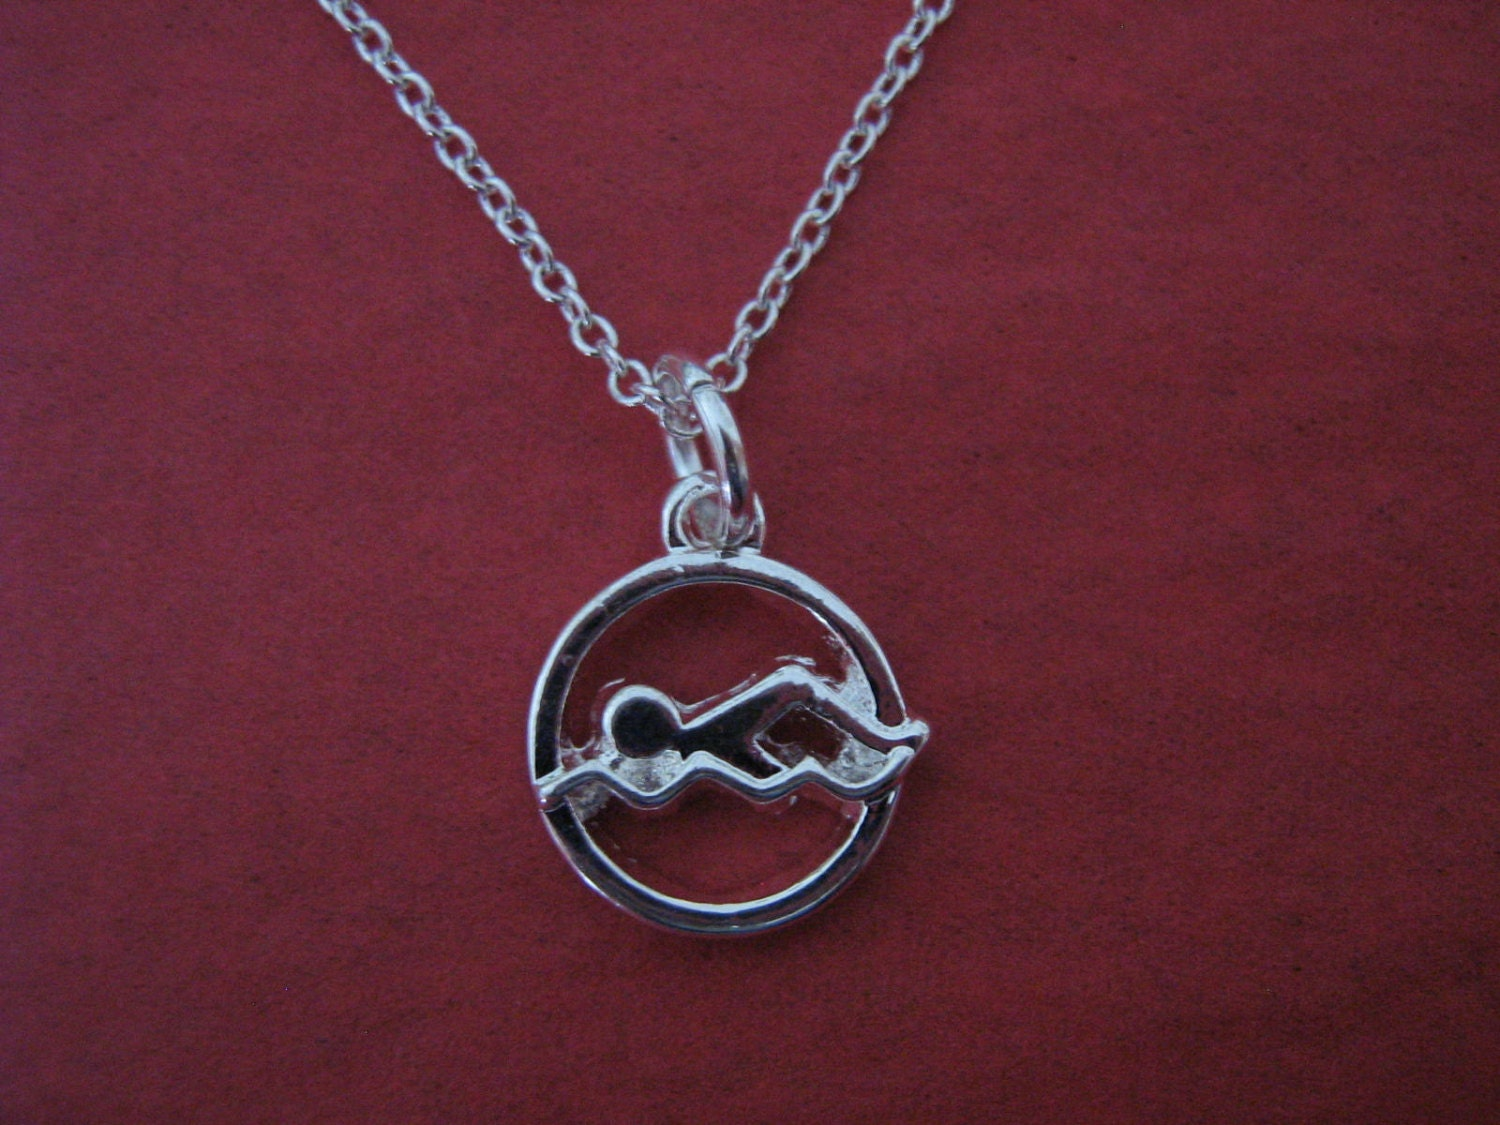 swimmer jewelry swimming necklace swimmer charm swim coach gift 2399